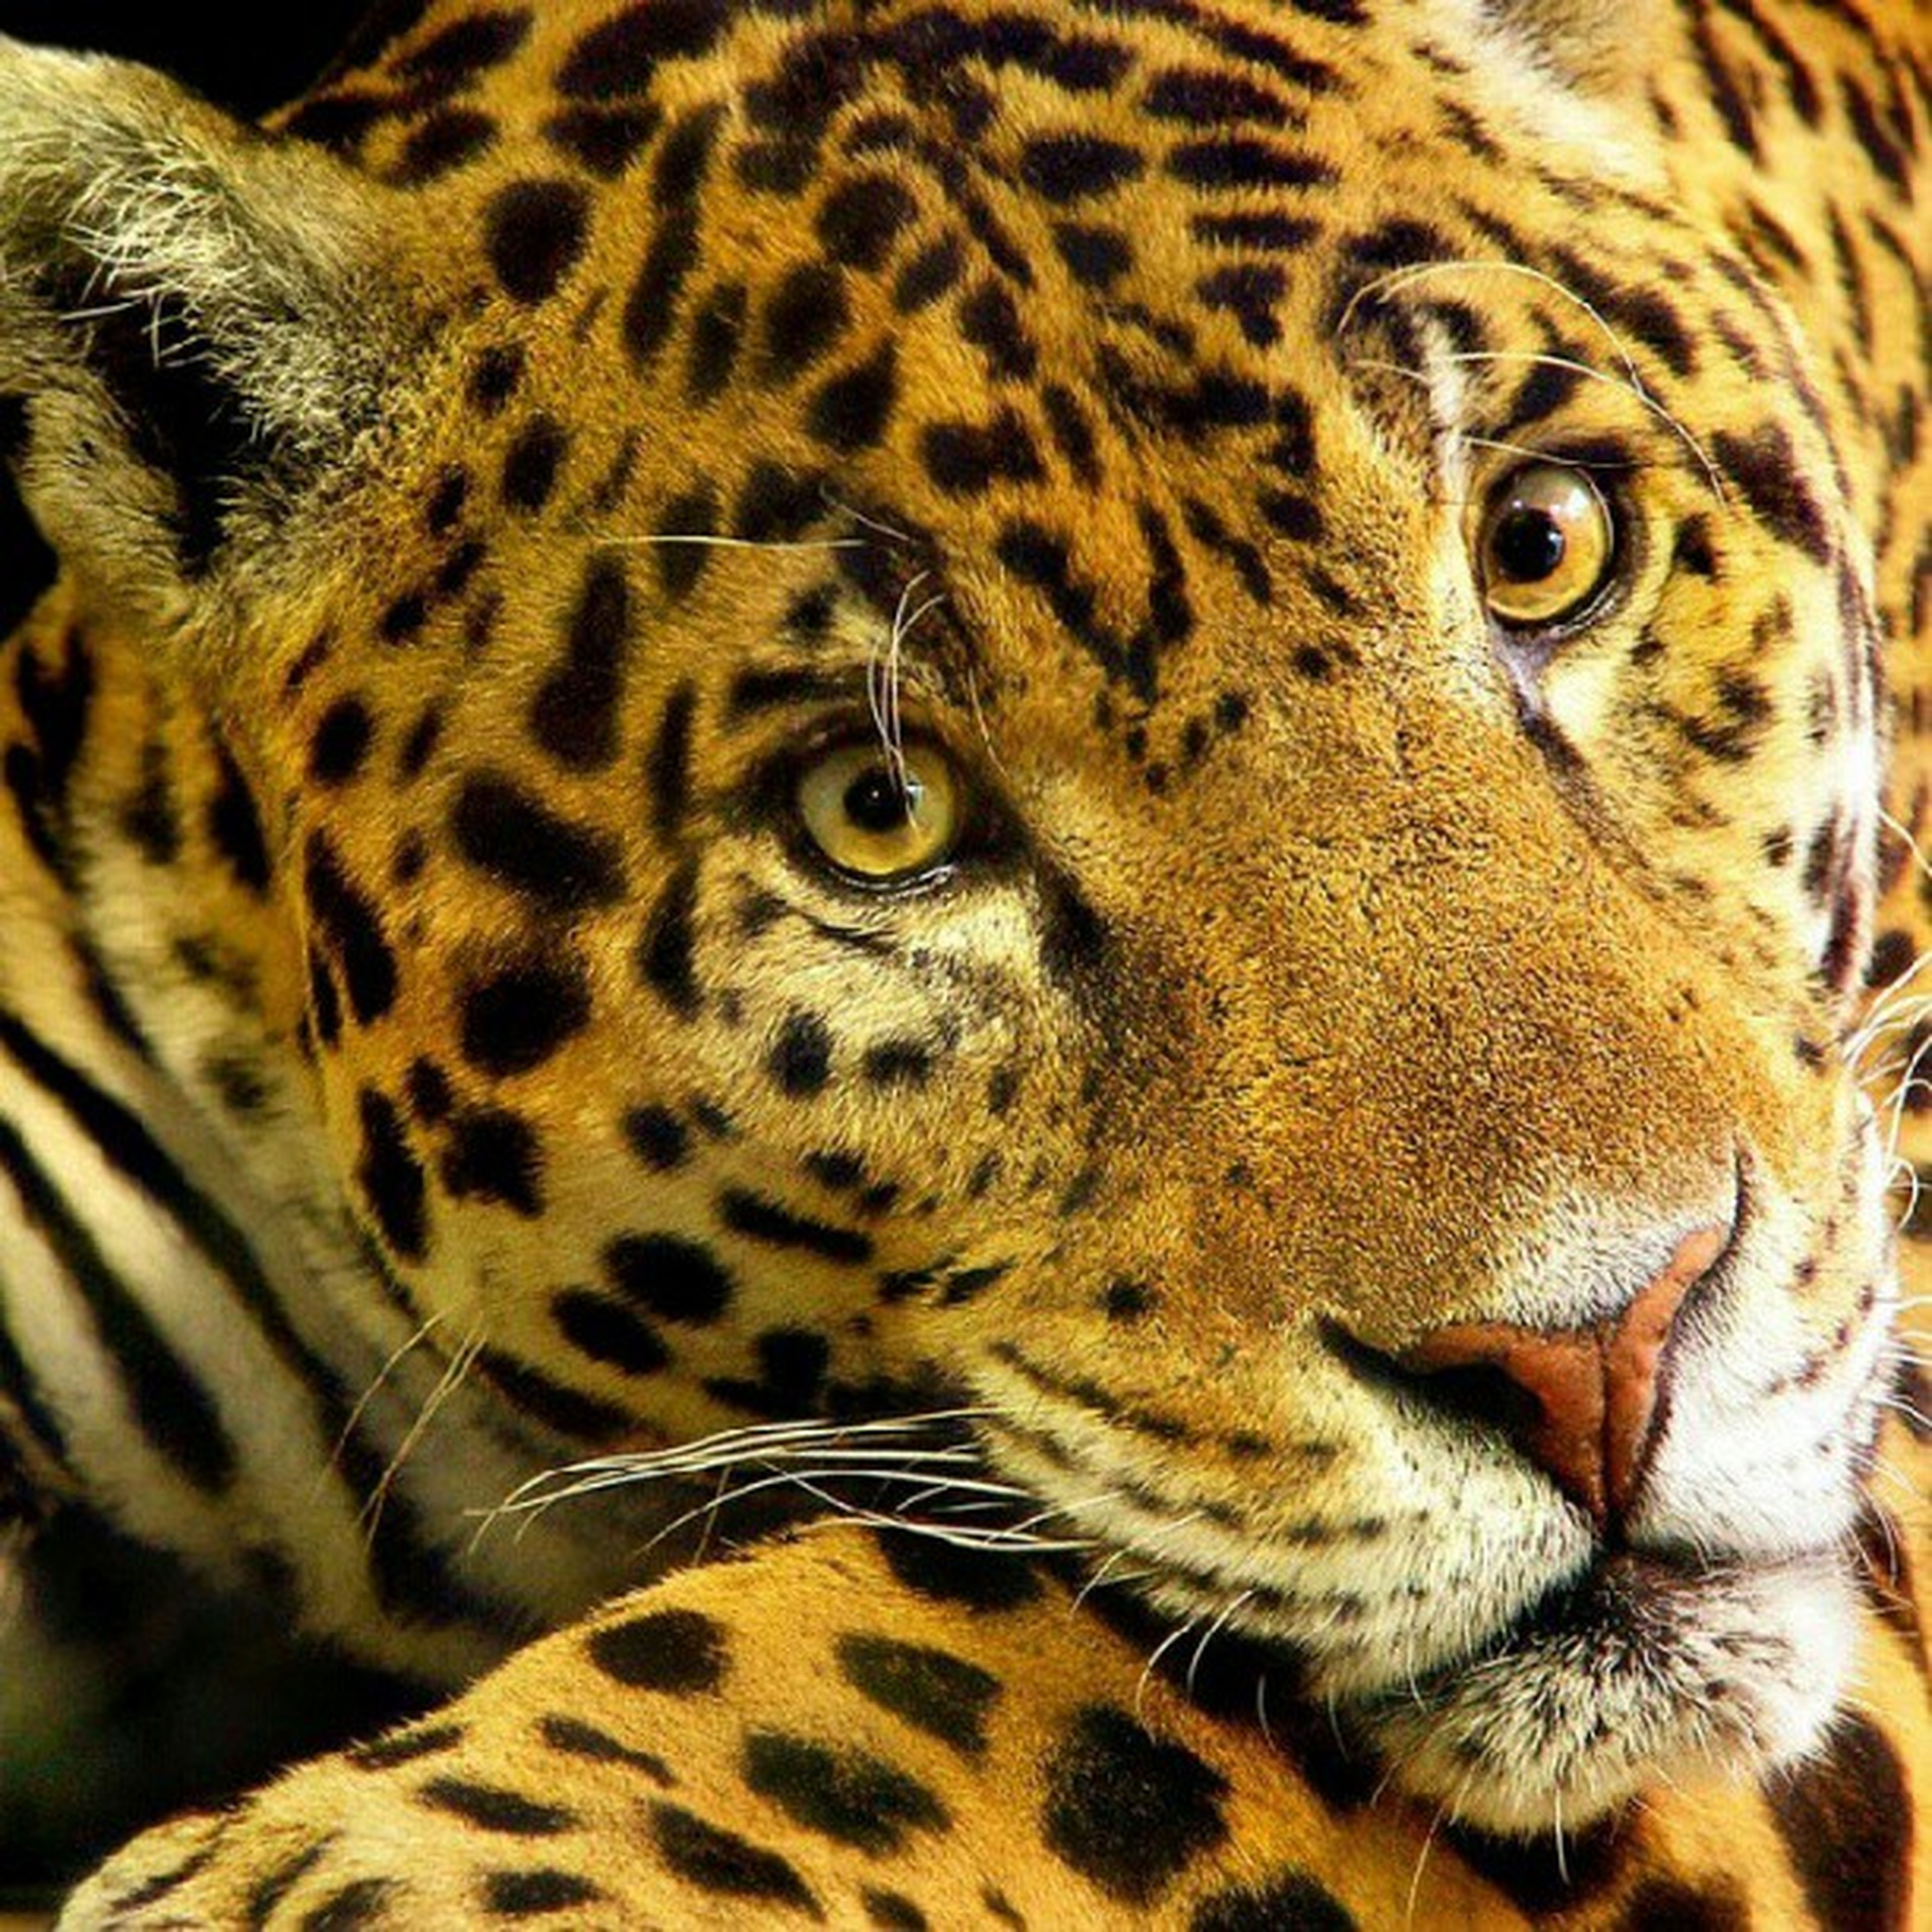 animal themes, one animal, animals in the wild, wildlife, animal markings, mammal, natural pattern, safari animals, animal head, tiger, close-up, animal body part, endangered species, leopard, zoology, undomesticated cat, whisker, part of, looking at camera